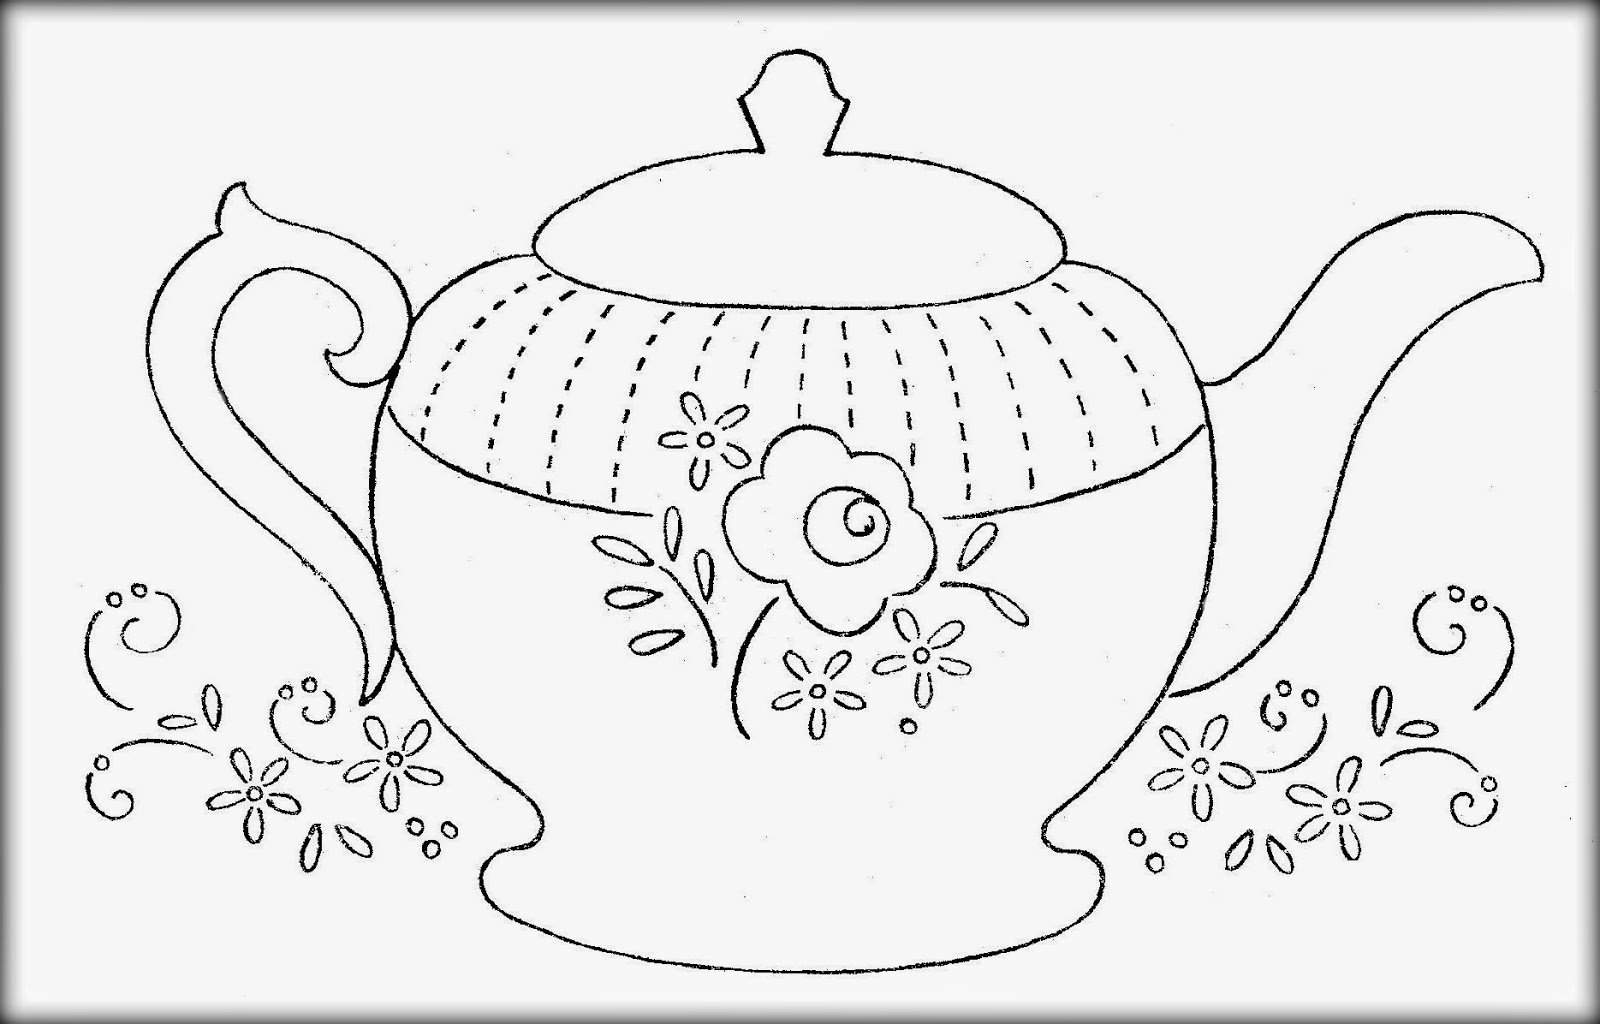 teapot coloring page | Coloring Pages